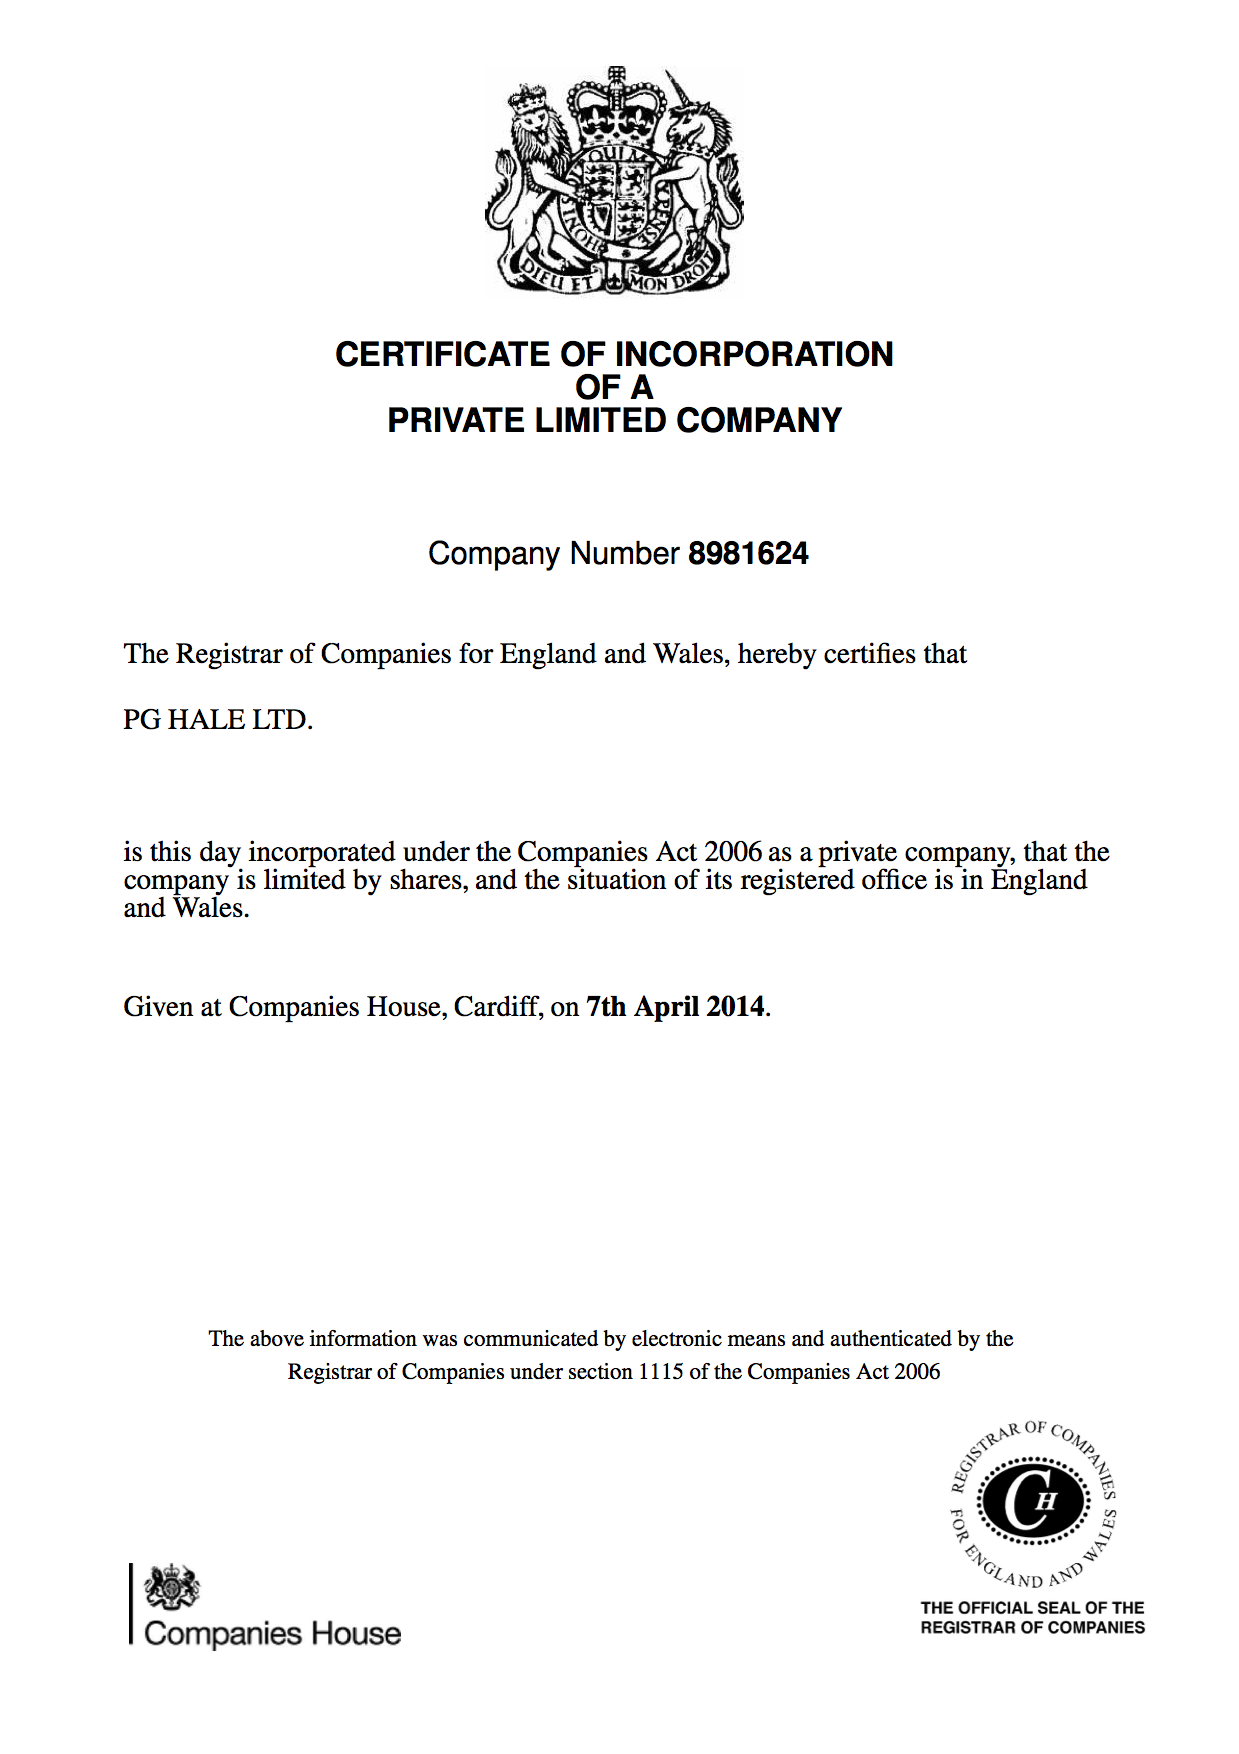 PG Hale Ltd. Certificate of Incorporation